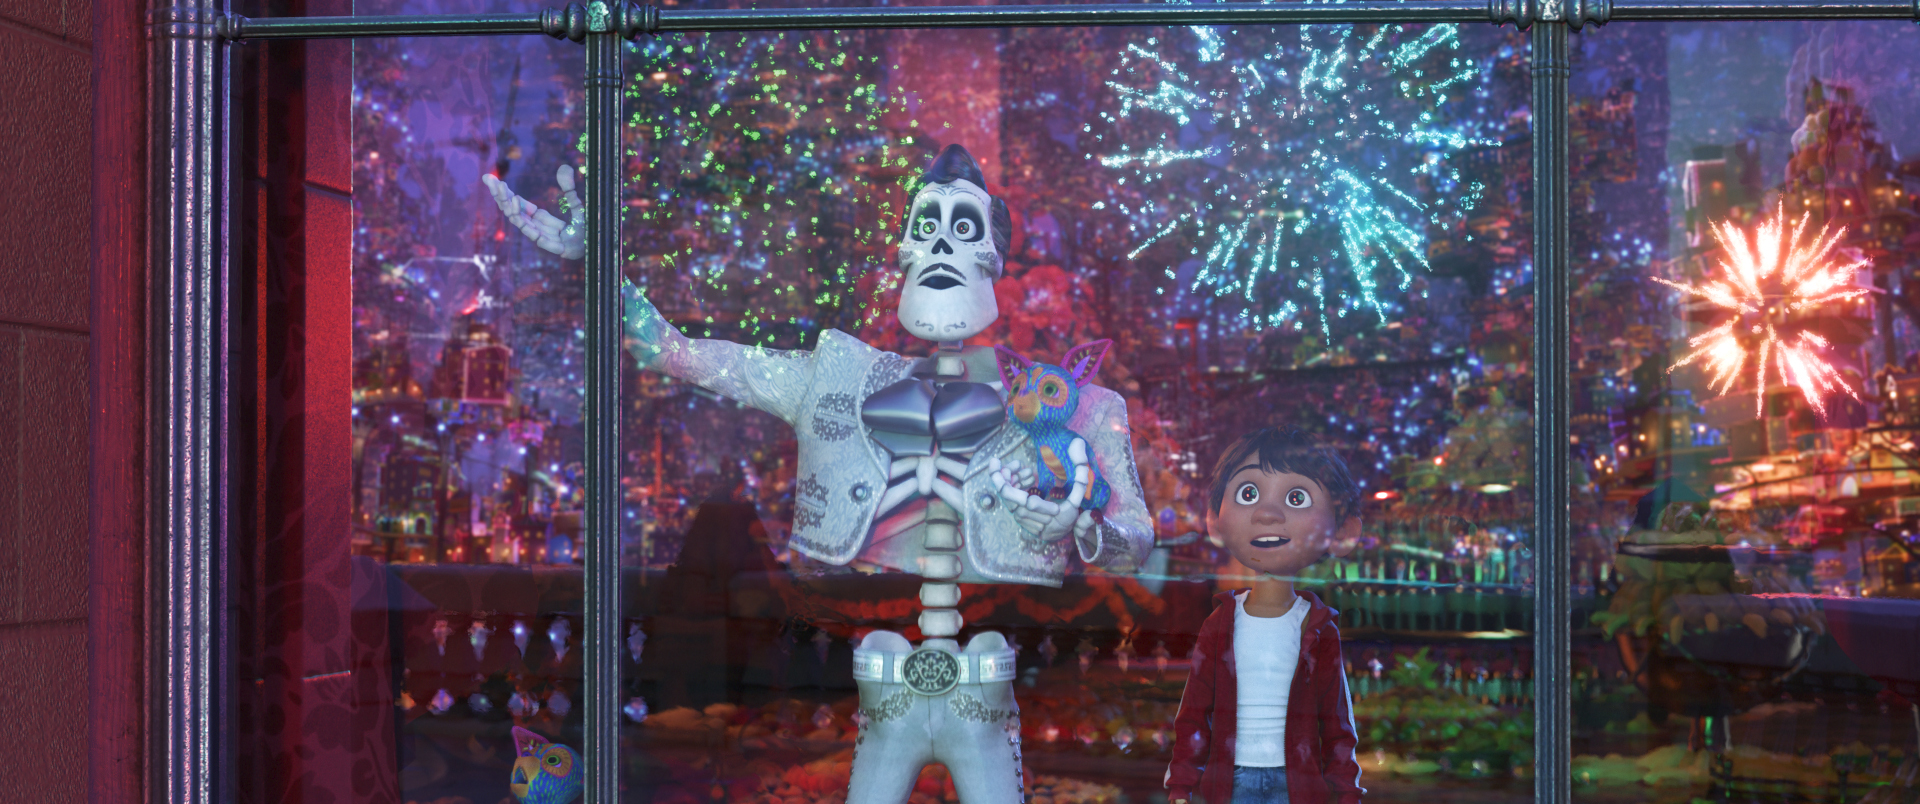 Pixar's 'Coco' Is Now the Highest-Grossing Movie in Mexico's History